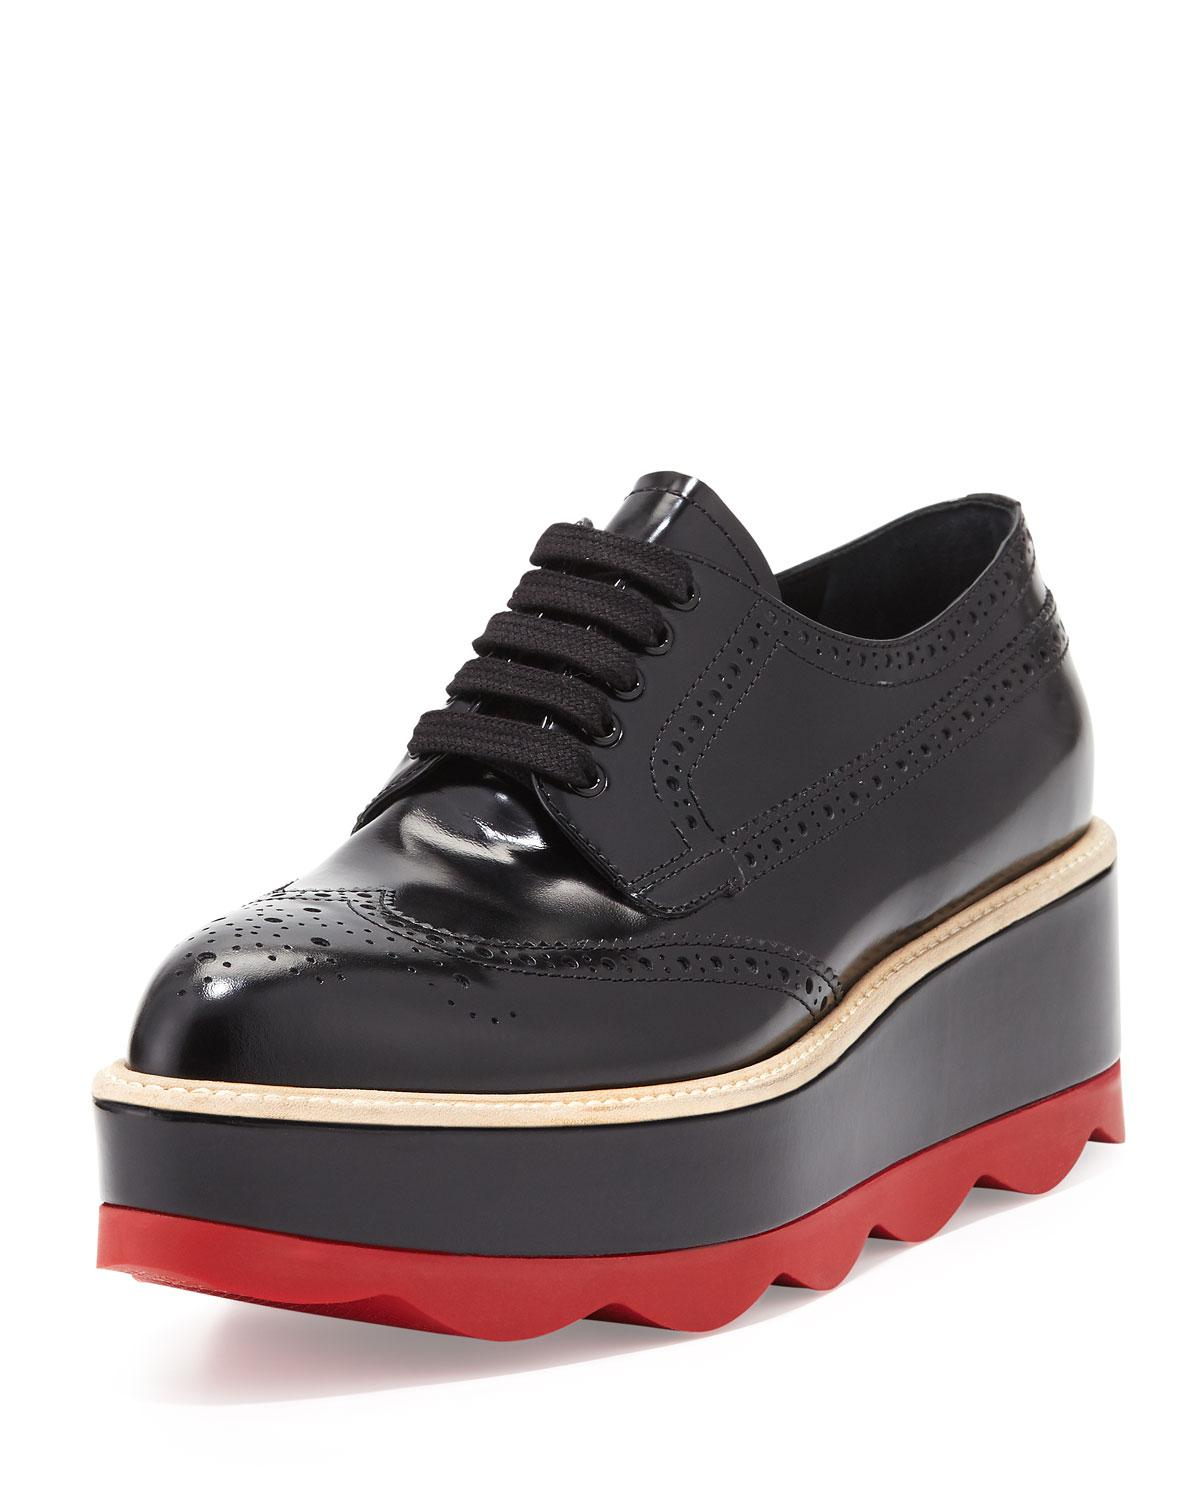 2f8174a199dc Gallery. Previously sold at  Bergdorf Goodman · Women s Creepers ...